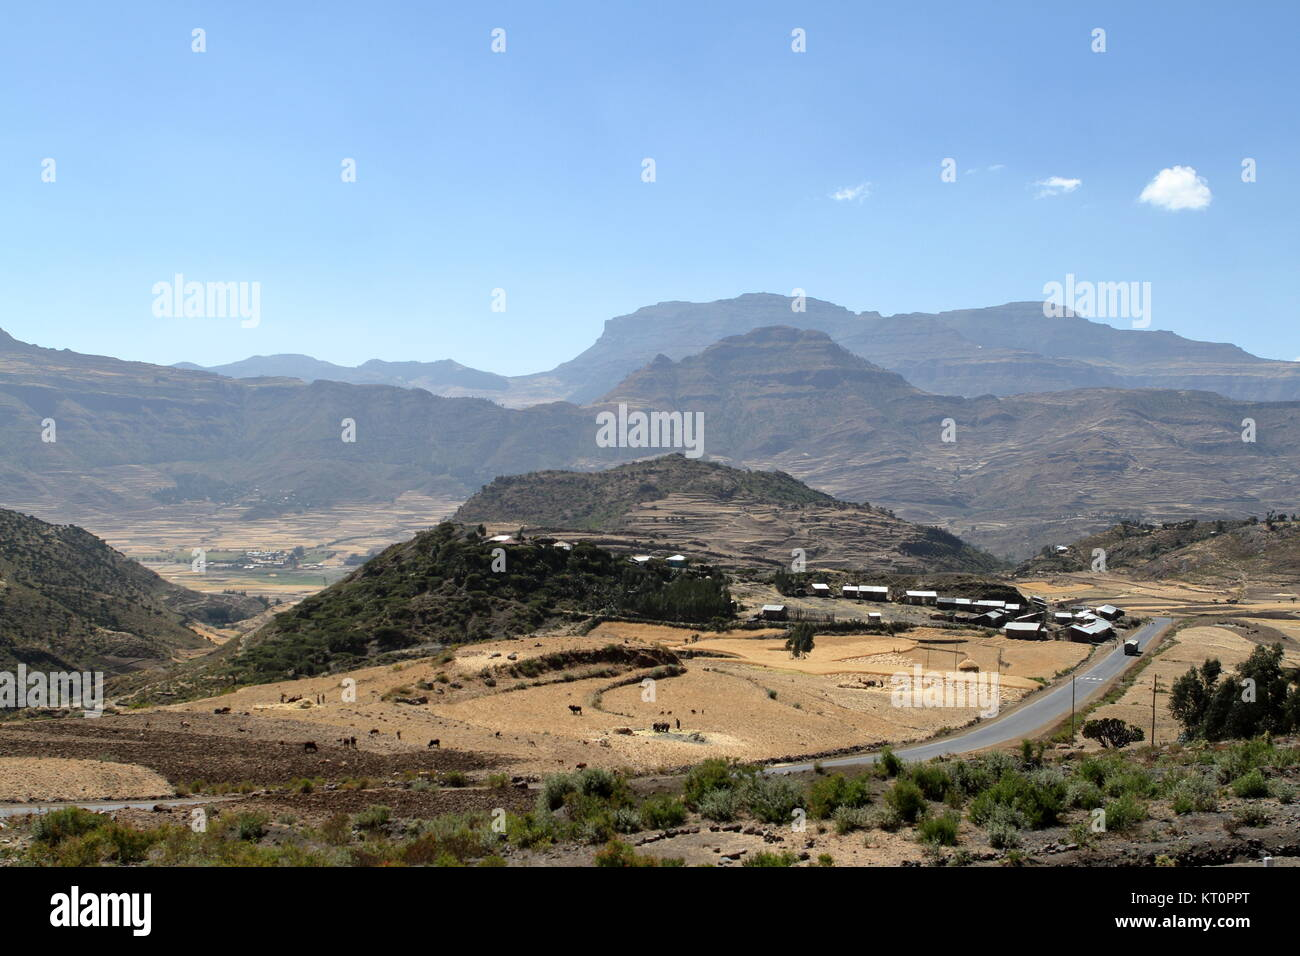 the landscape at mekele in ethiopia - Stock Image